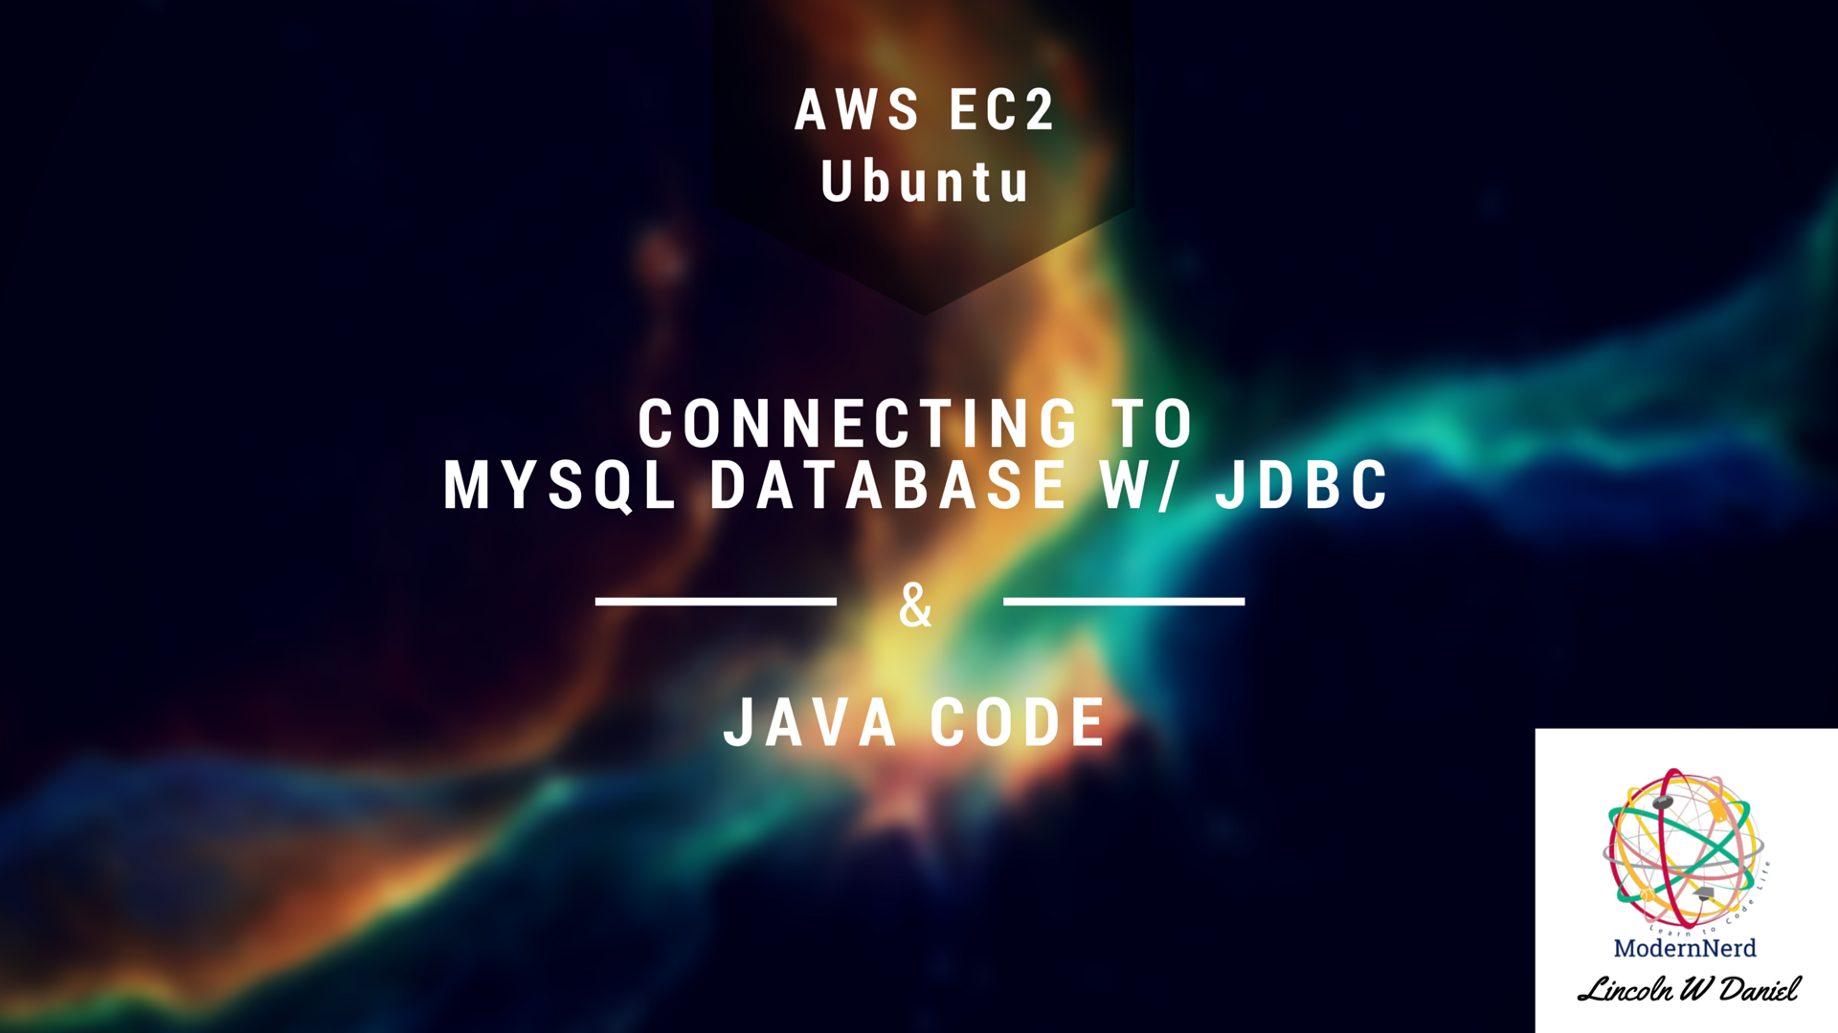 Connecting to MySQL DB on AWS EC2 with JDBC for Java